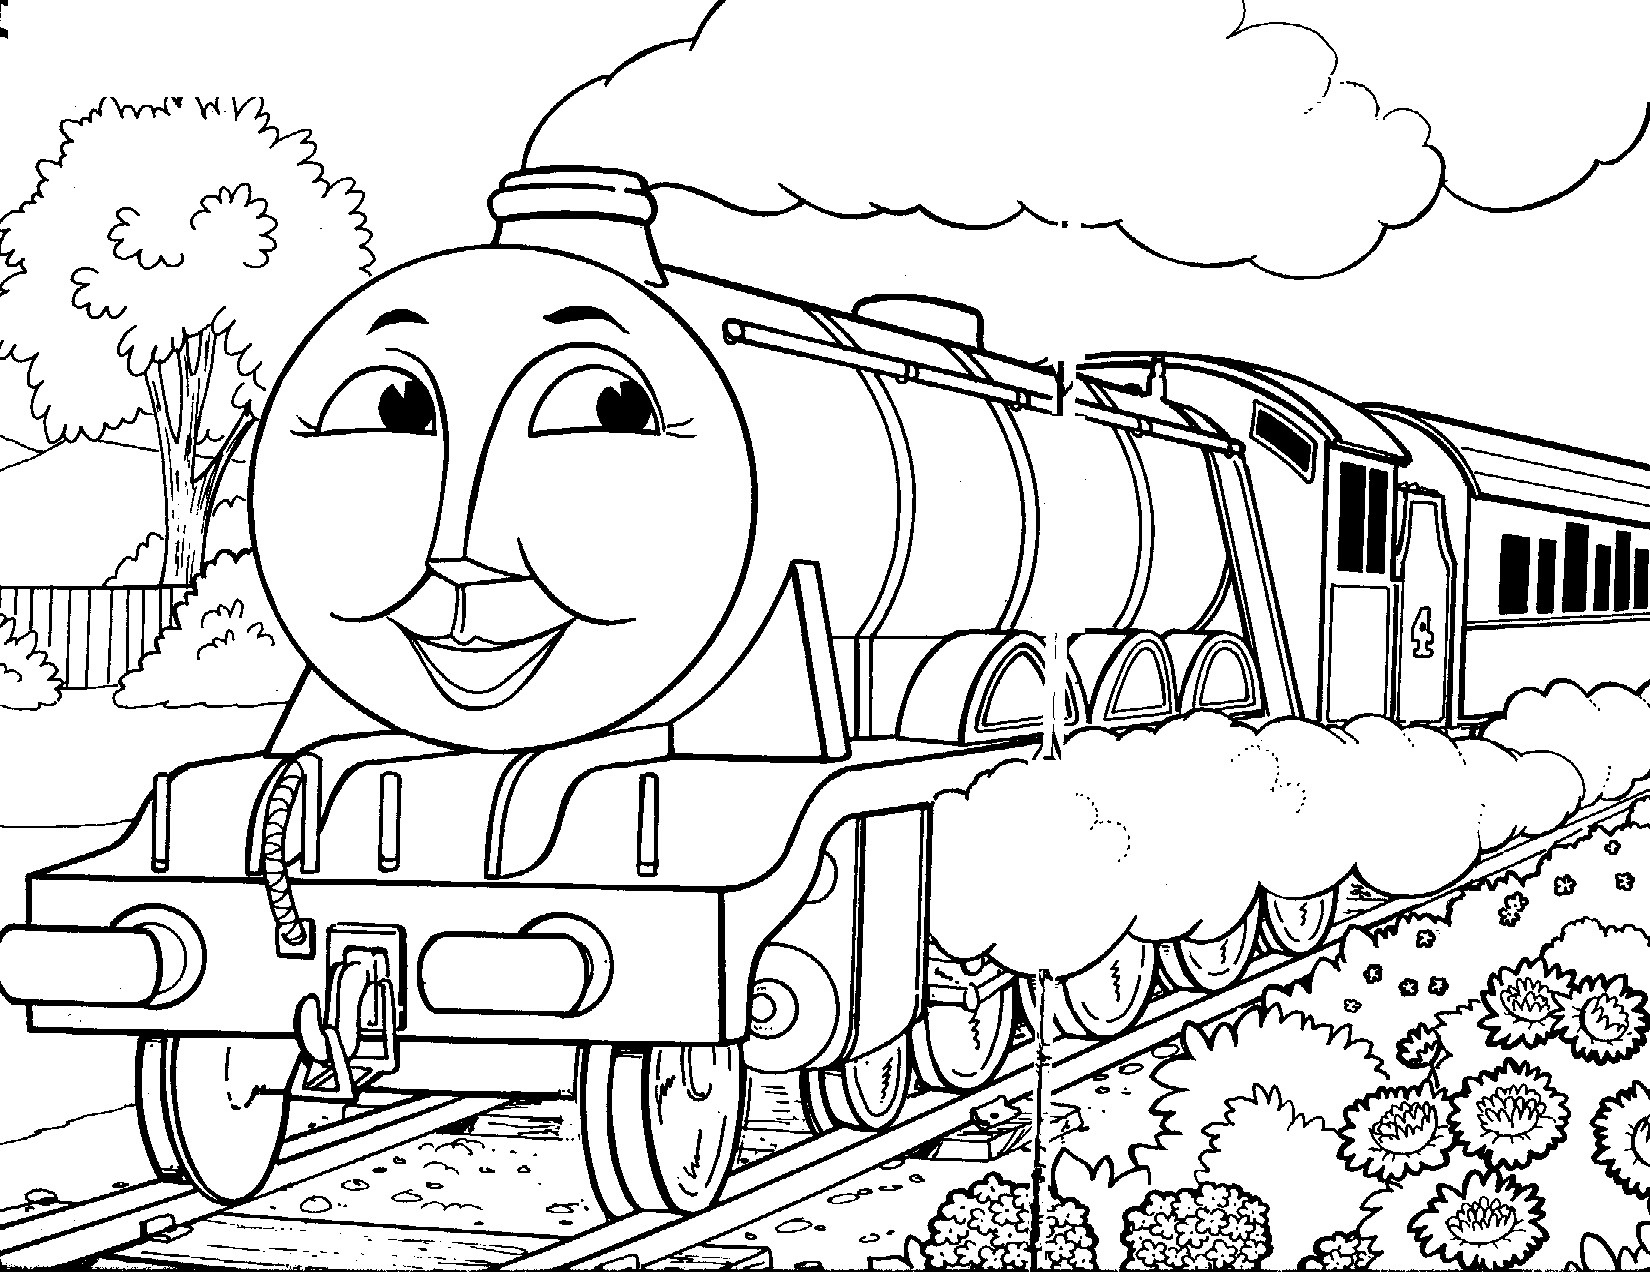 train coloring pages for toddlers Collection-Thomas and Friends Printable Coloring Pages Amazing Train Coloring Pages for toddlers Letramac 19-o